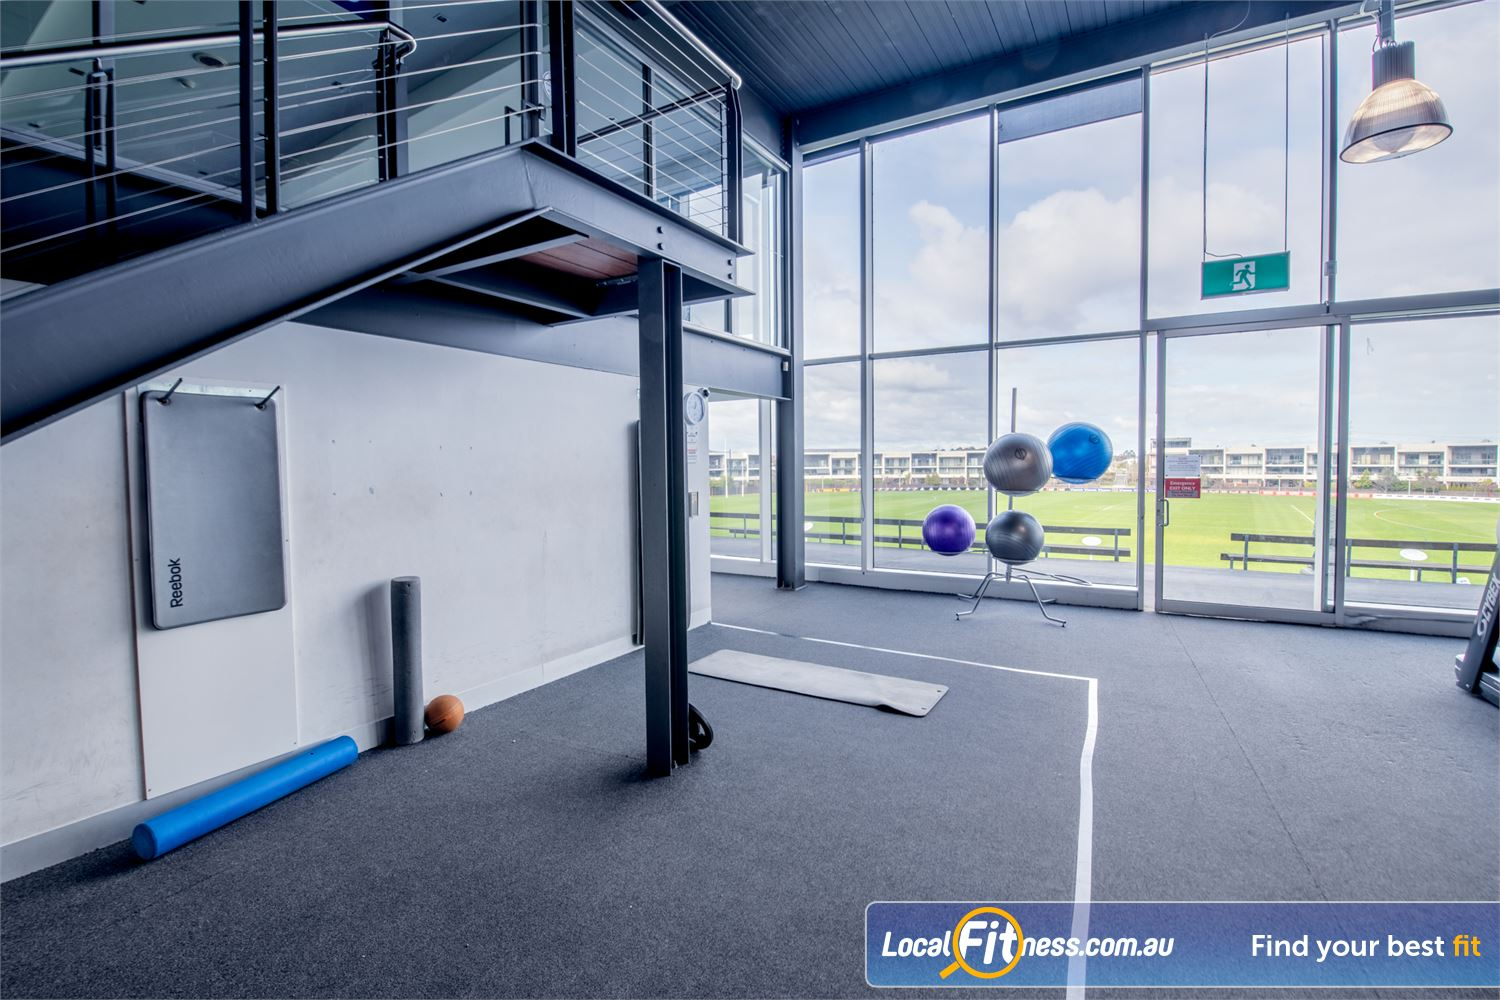 Goodlife Health Clubs Waverley Park Mulgrave Fully equipped stretch area with stunning views of Waverley Park.